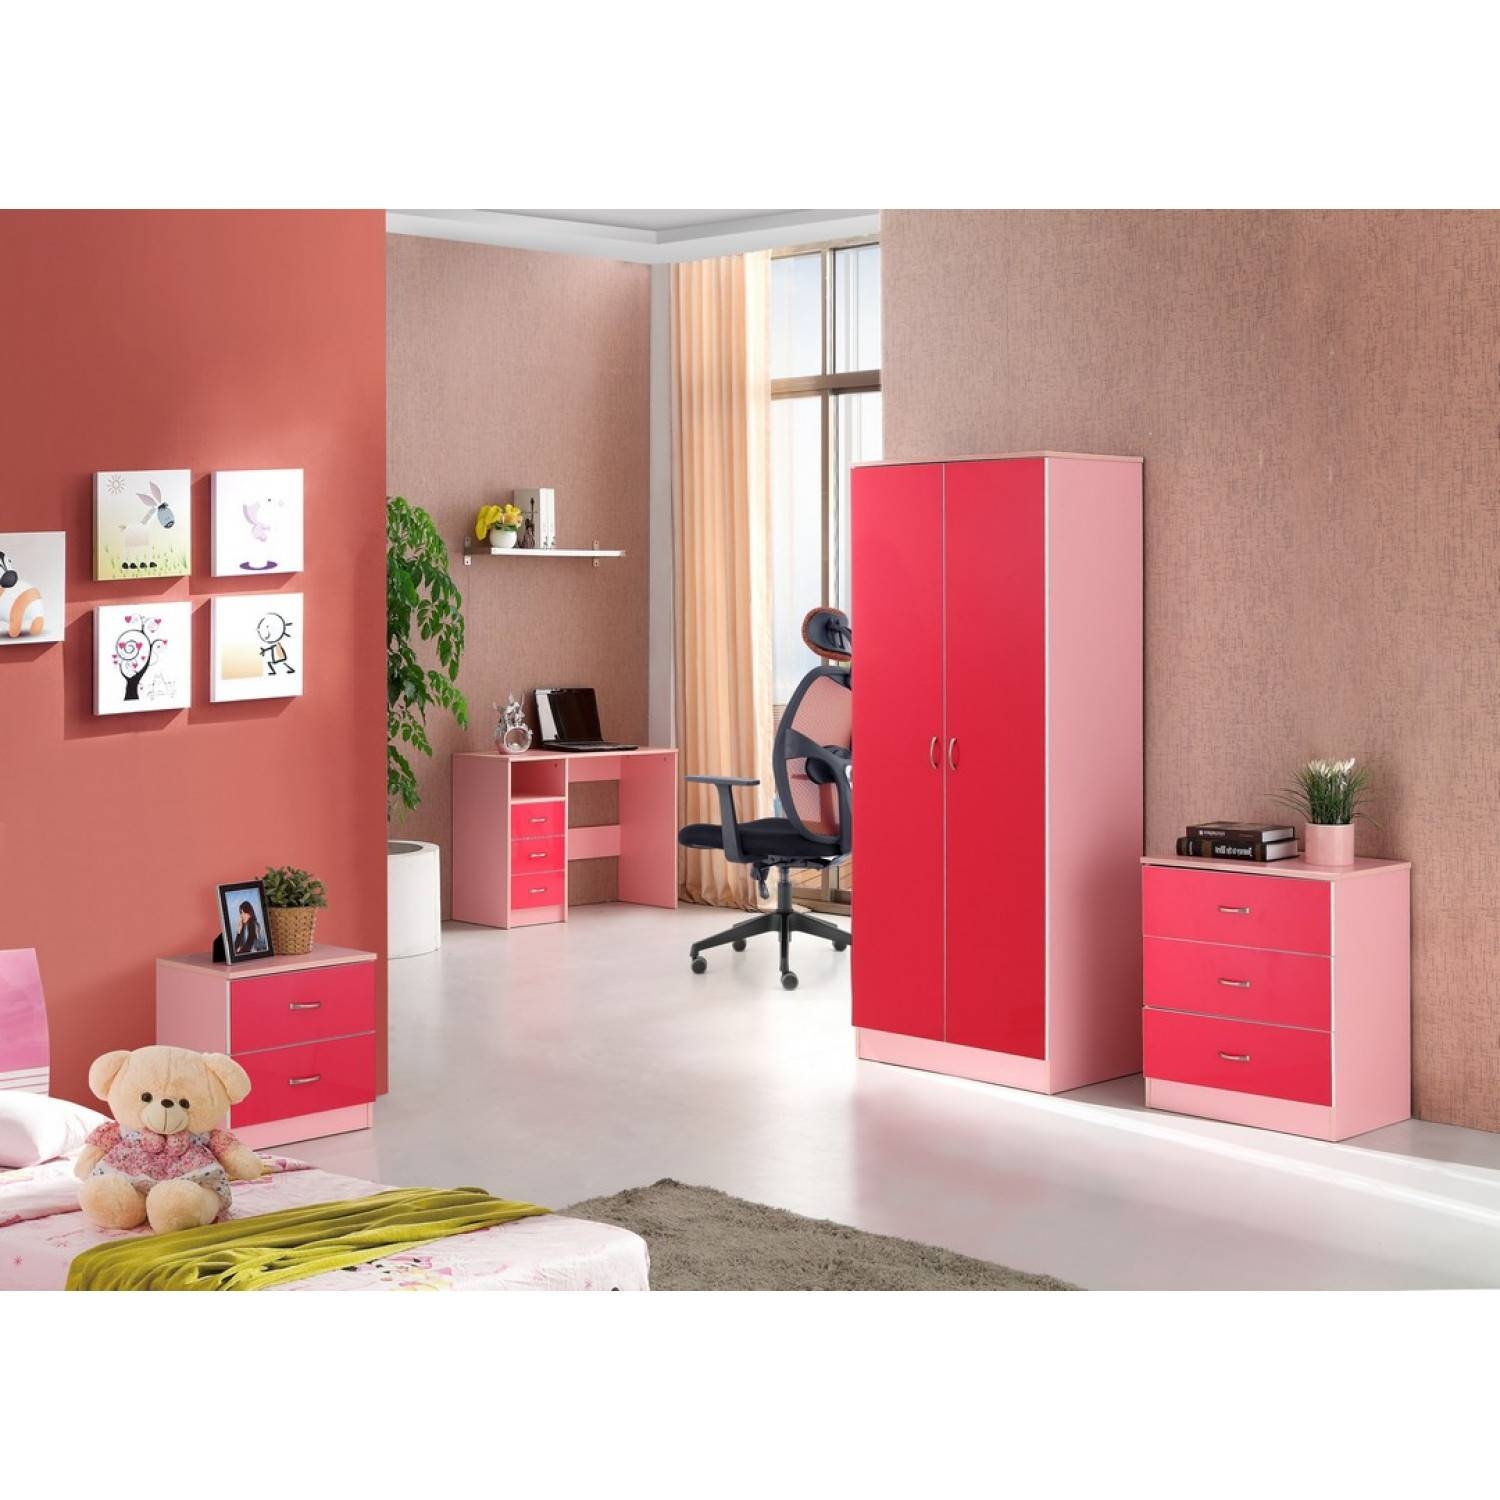 Kale High Gloss Two Door Wardrobe In Pink On Pink throughout Pink High Gloss Wardrobes (Image 8 of 15)